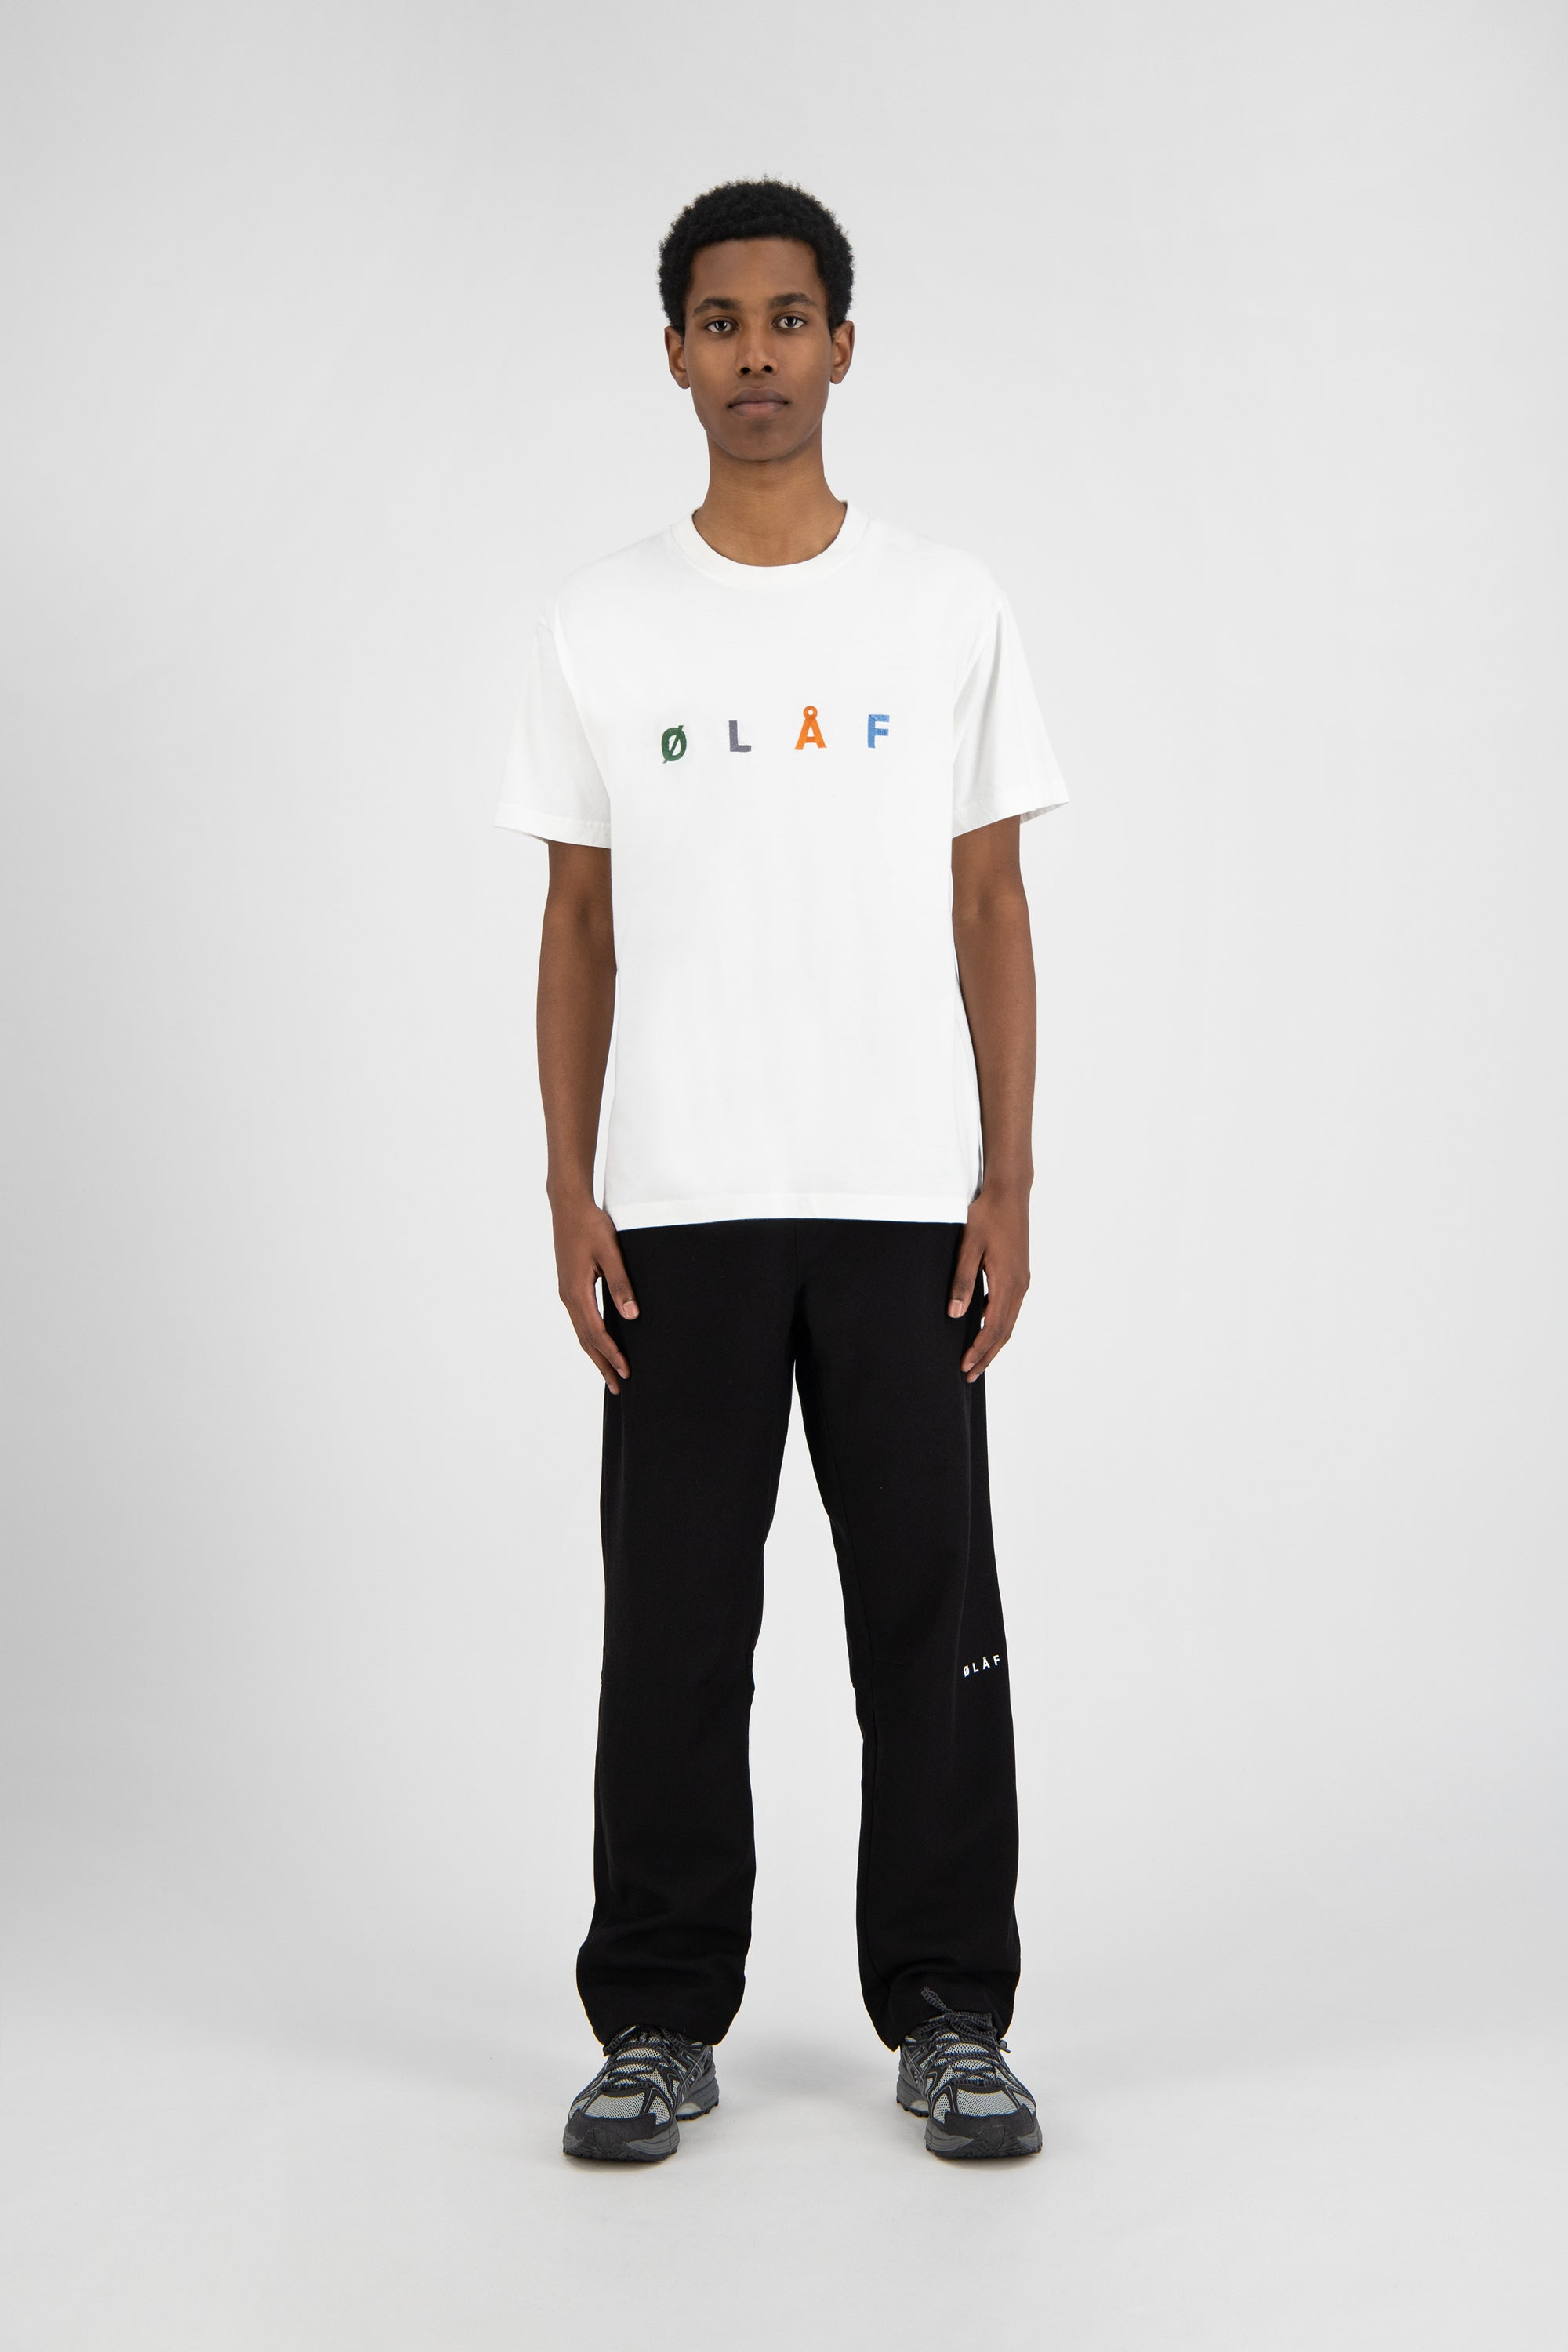 ØLÅF Chainstitch Tee <br>White